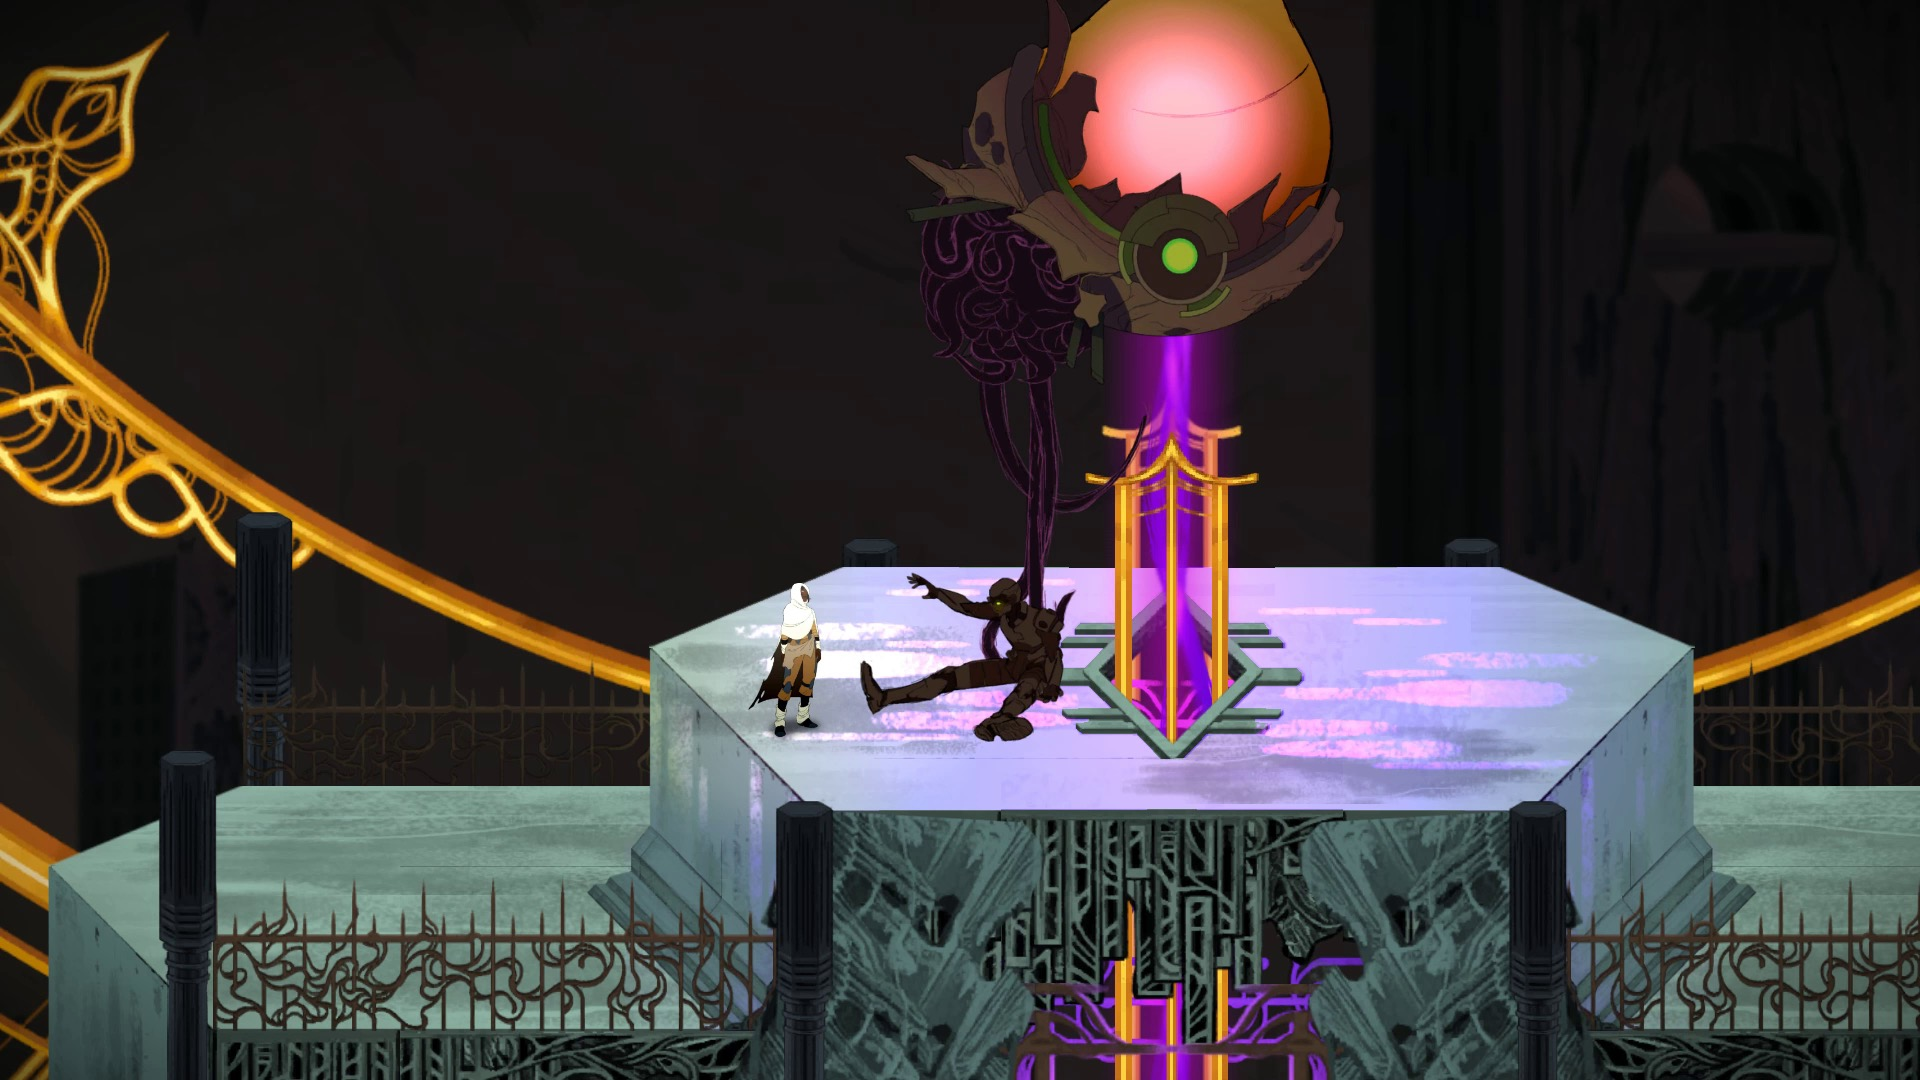 Sundered game influenced by Left 4 Dead and Diablo 2